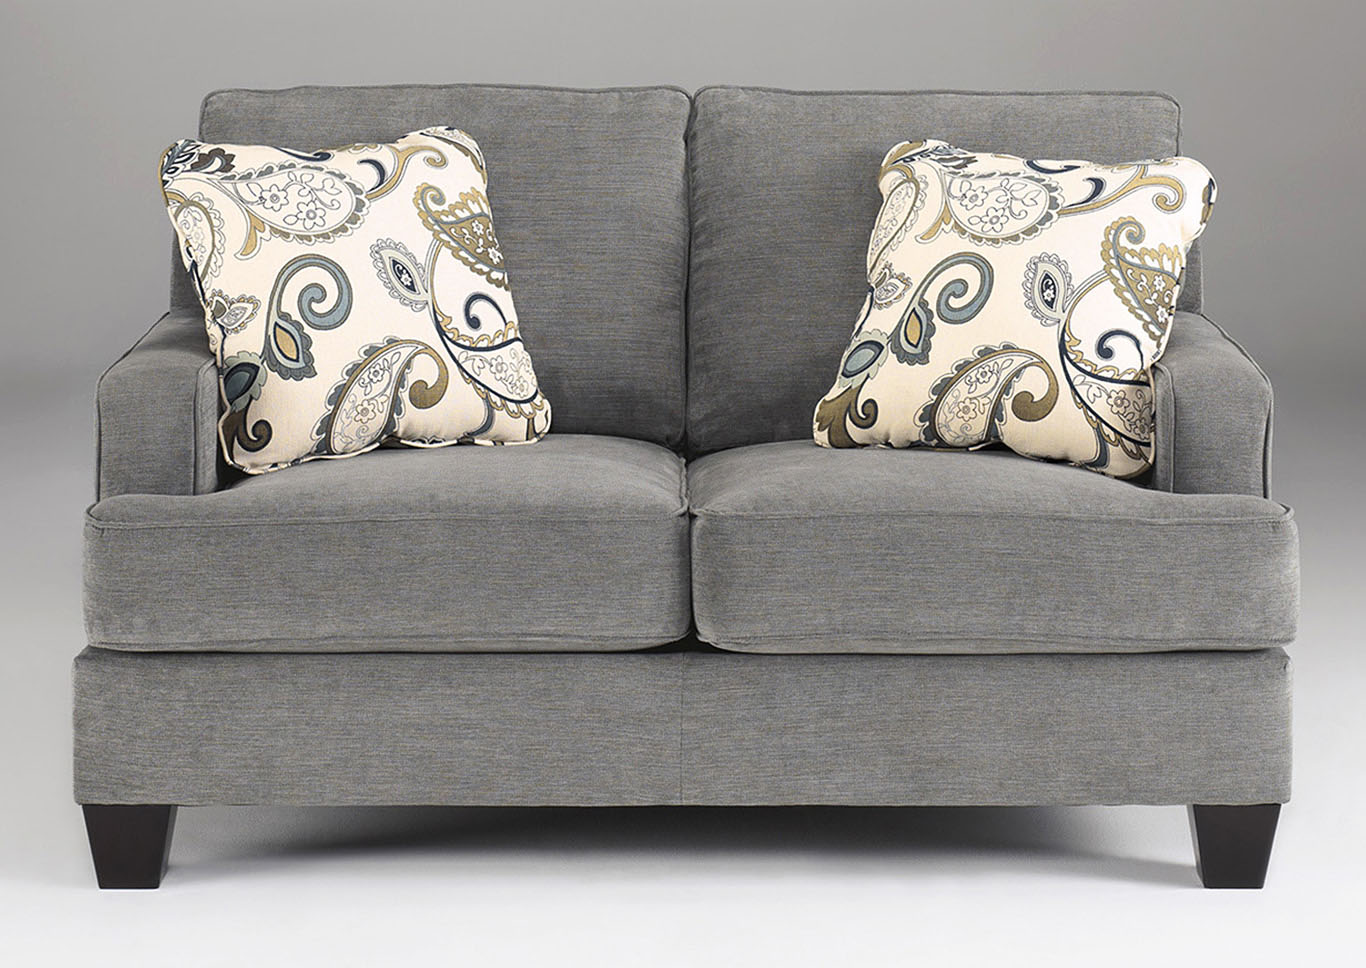 Yvette Steel Loveseat,Ashley